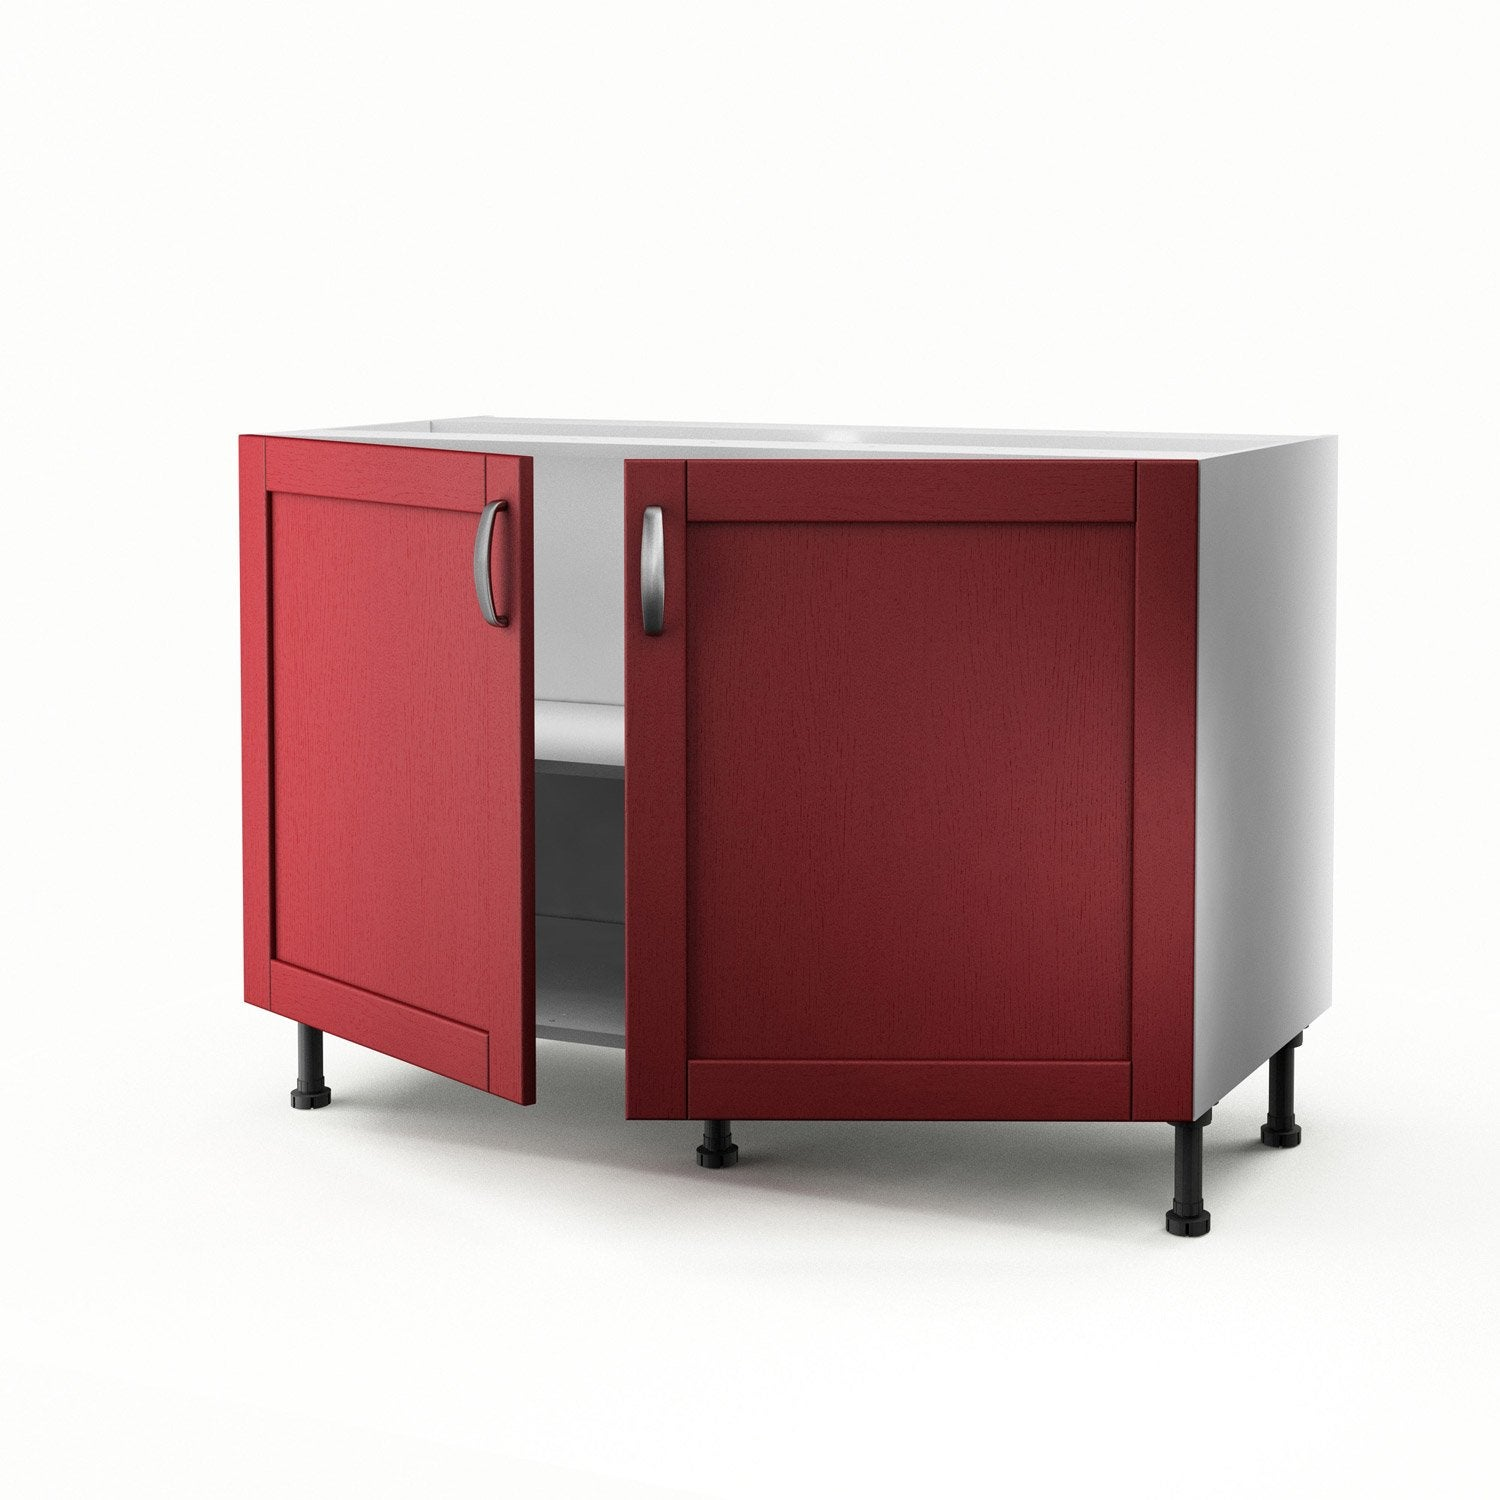 meuble de cuisine sous evier rouge 2 portes rubis h70xl120xp56. Black Bedroom Furniture Sets. Home Design Ideas